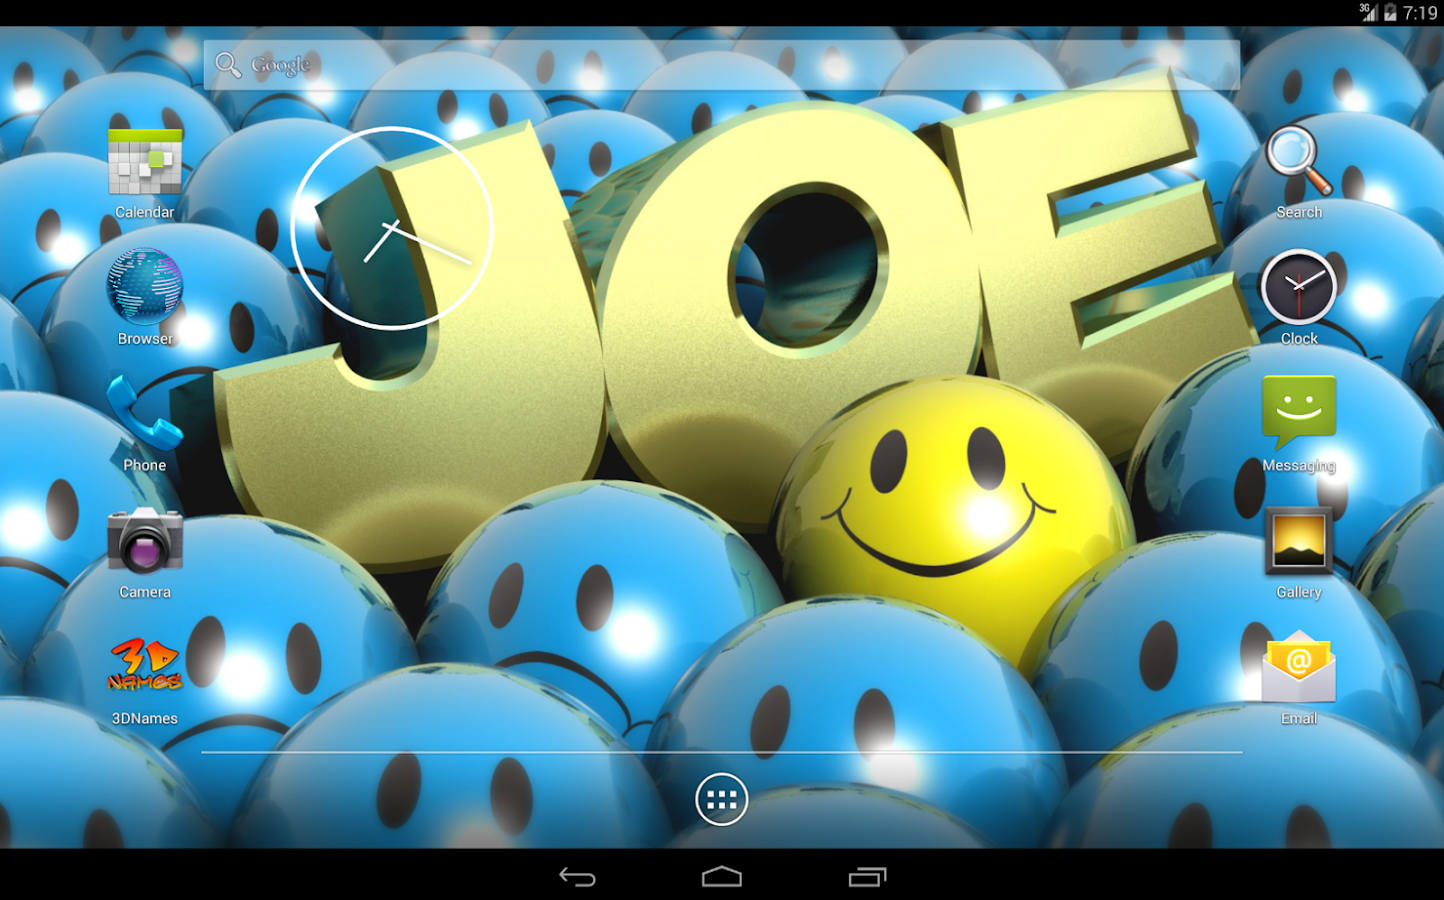 3D Names   Android Apps on Google Play 1444x900